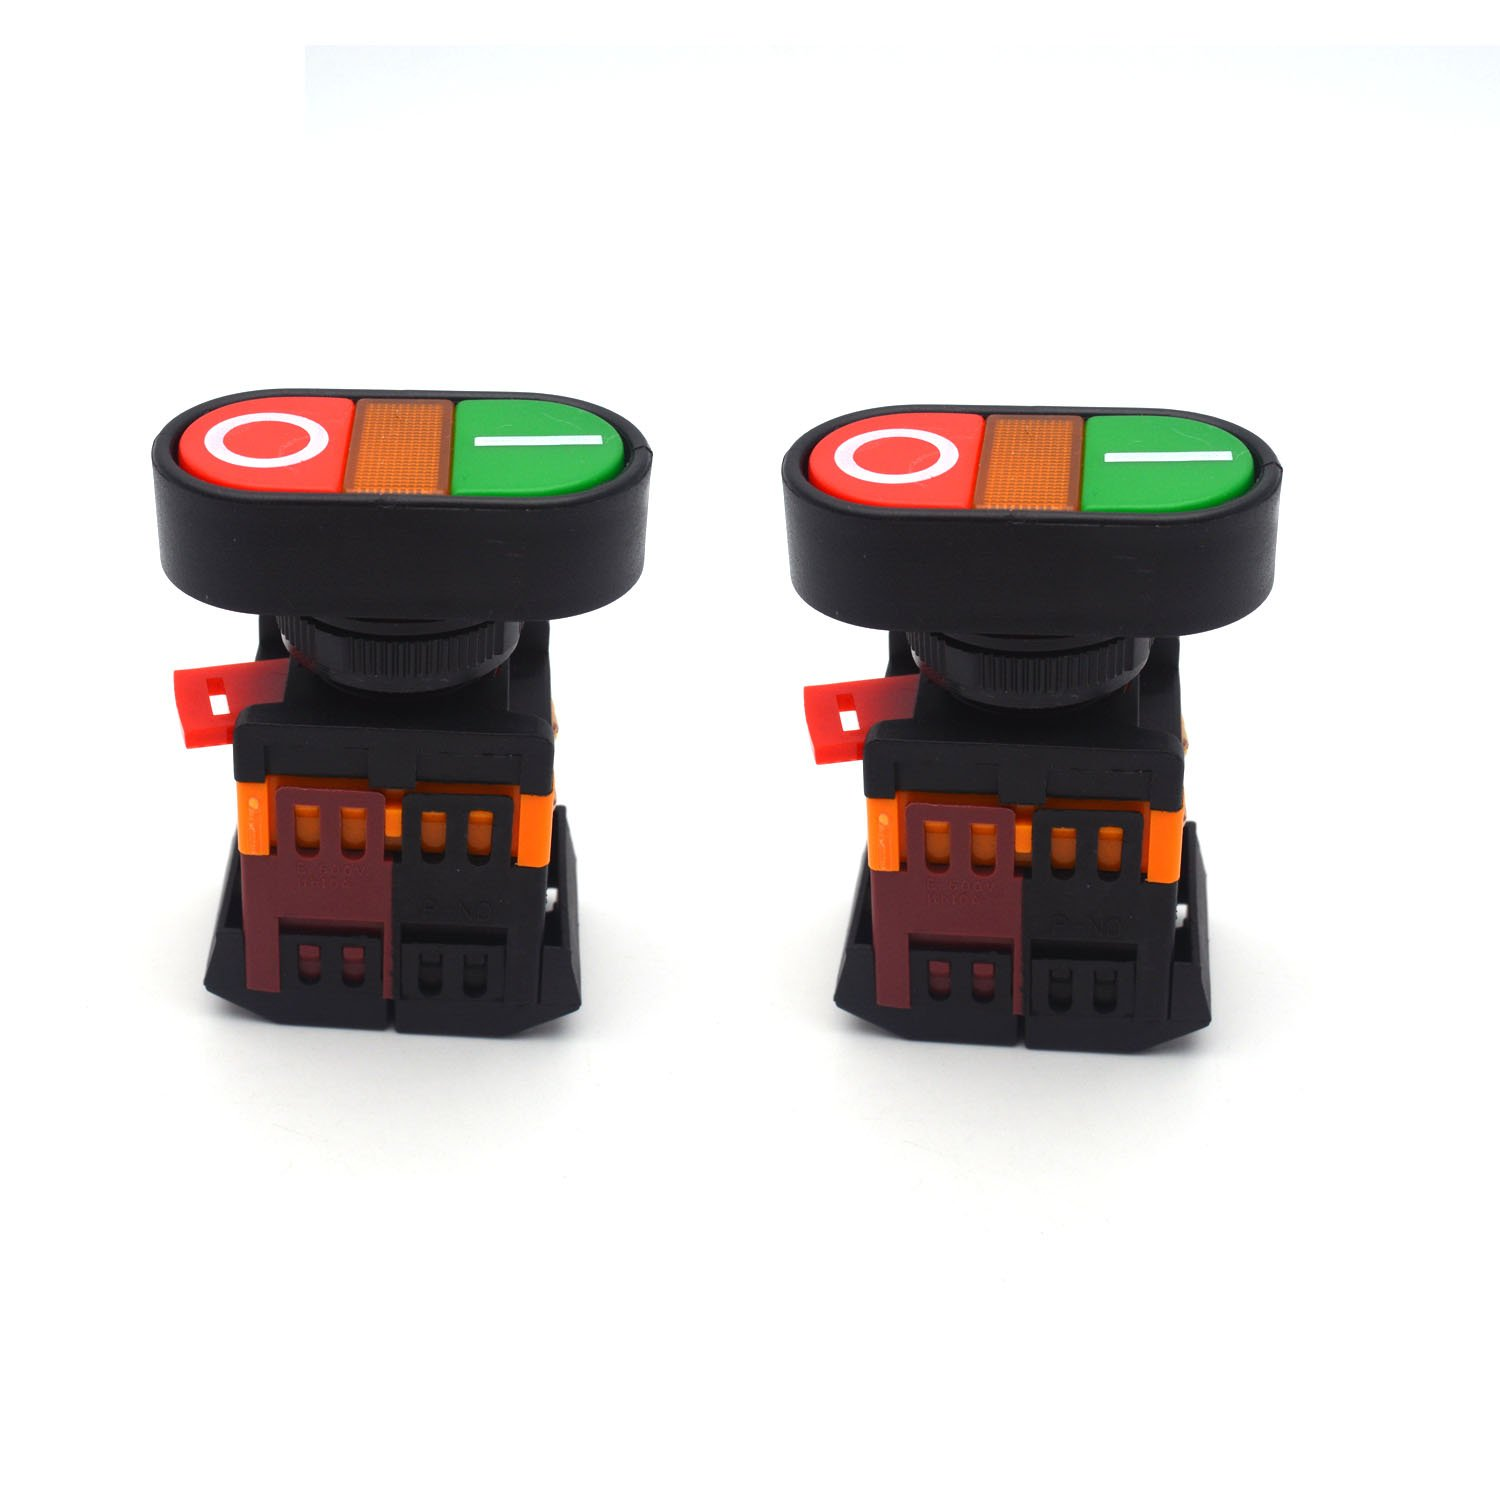 Antrader AC 600V 10A ON/Off Start Stop Momentary Push Button Switch with Indicator Light APBB-22&25N Pack of 2